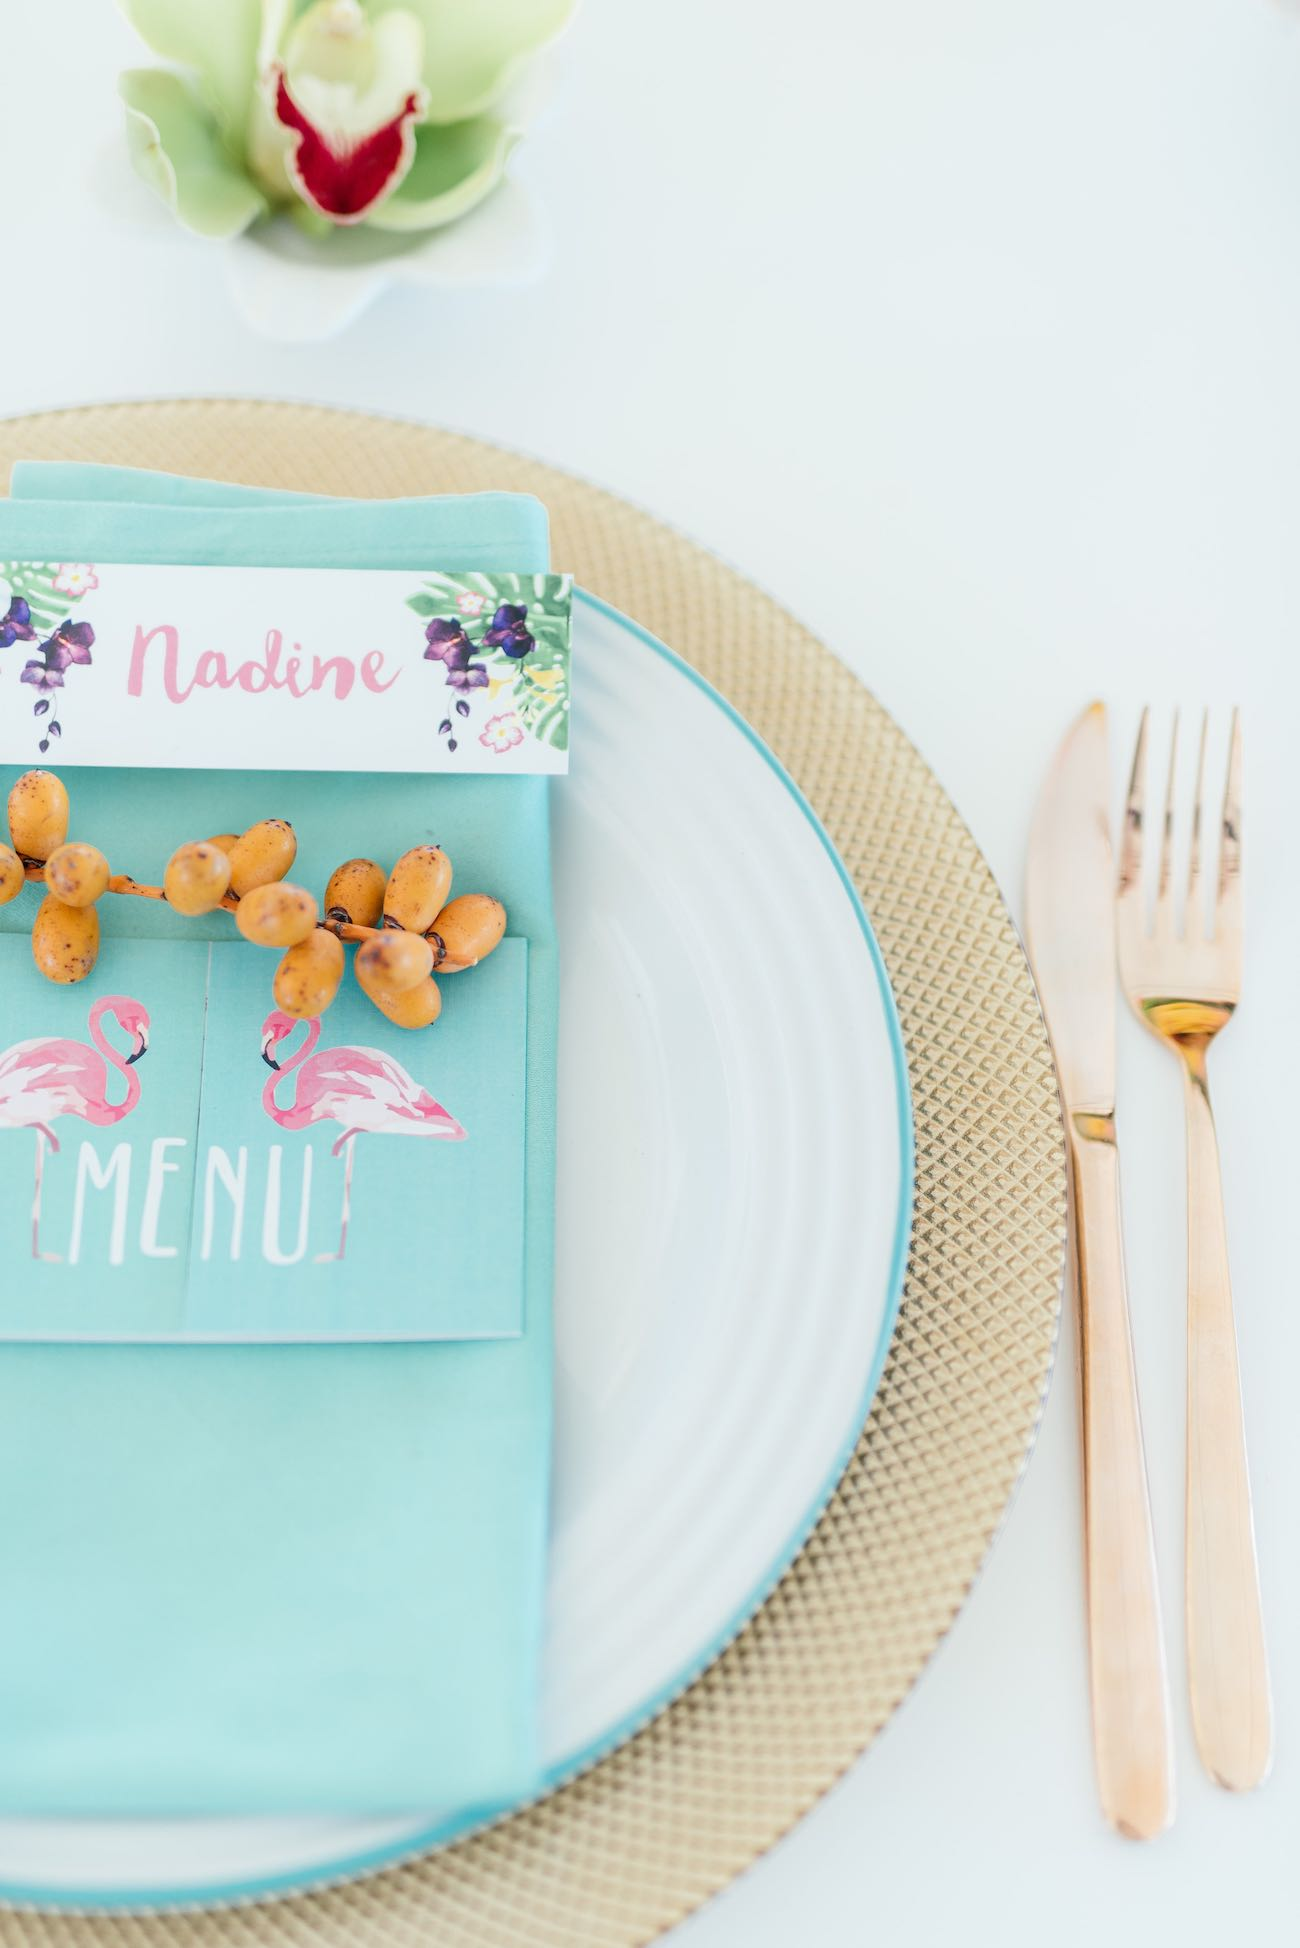 Tropical wedding place setting with hand painted menu and name card. Click for the most absolutely gorgeous Tropical Wedding ideas ever!